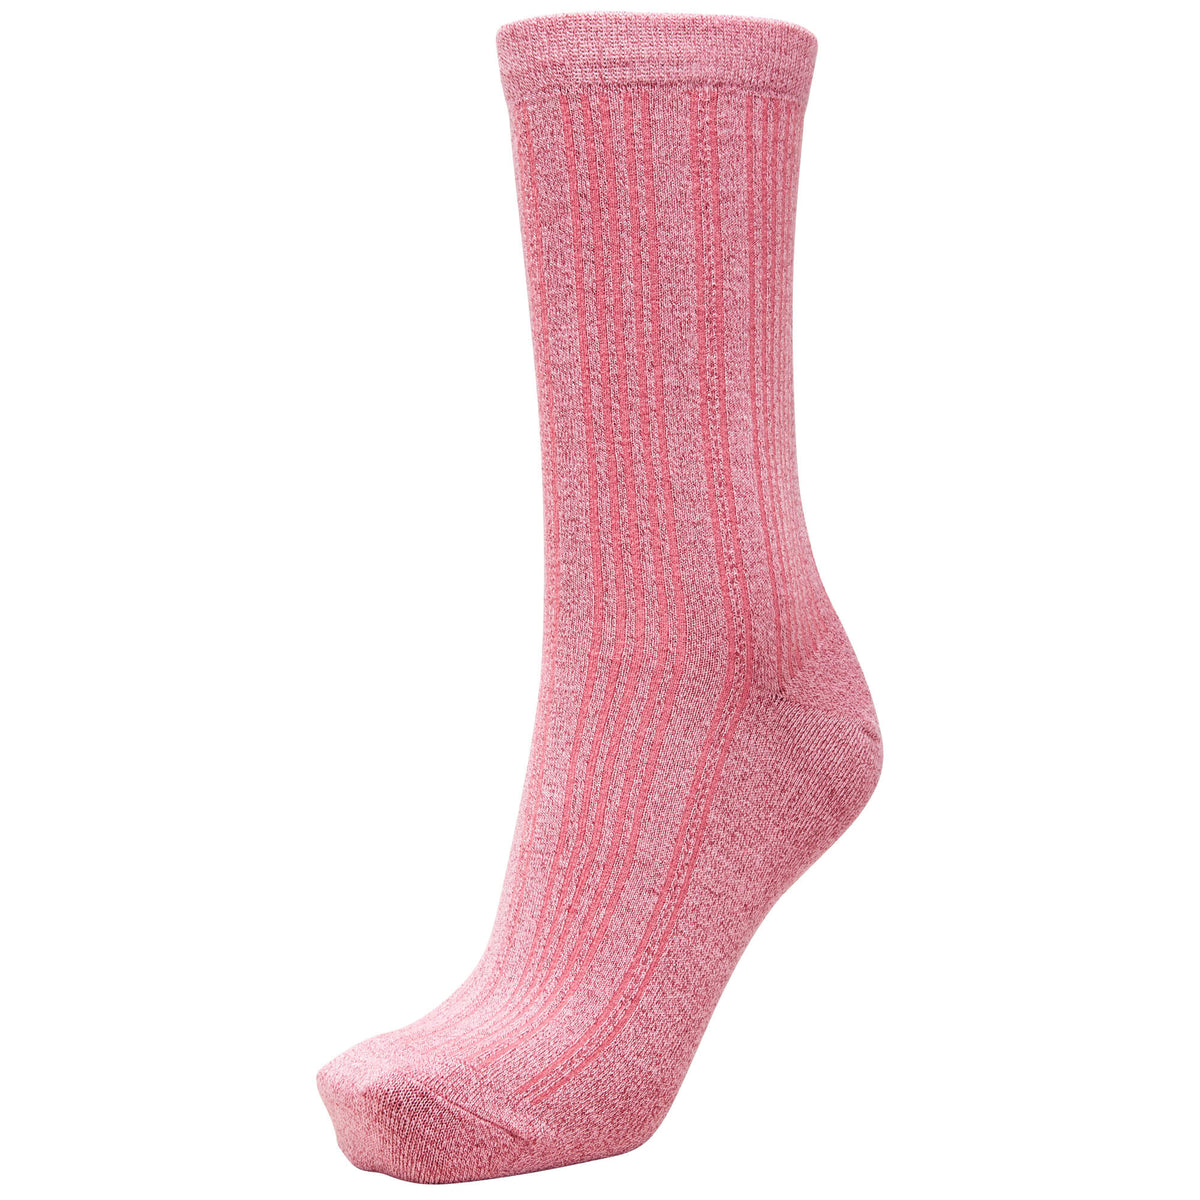 SLF Lana socks in rose bloom